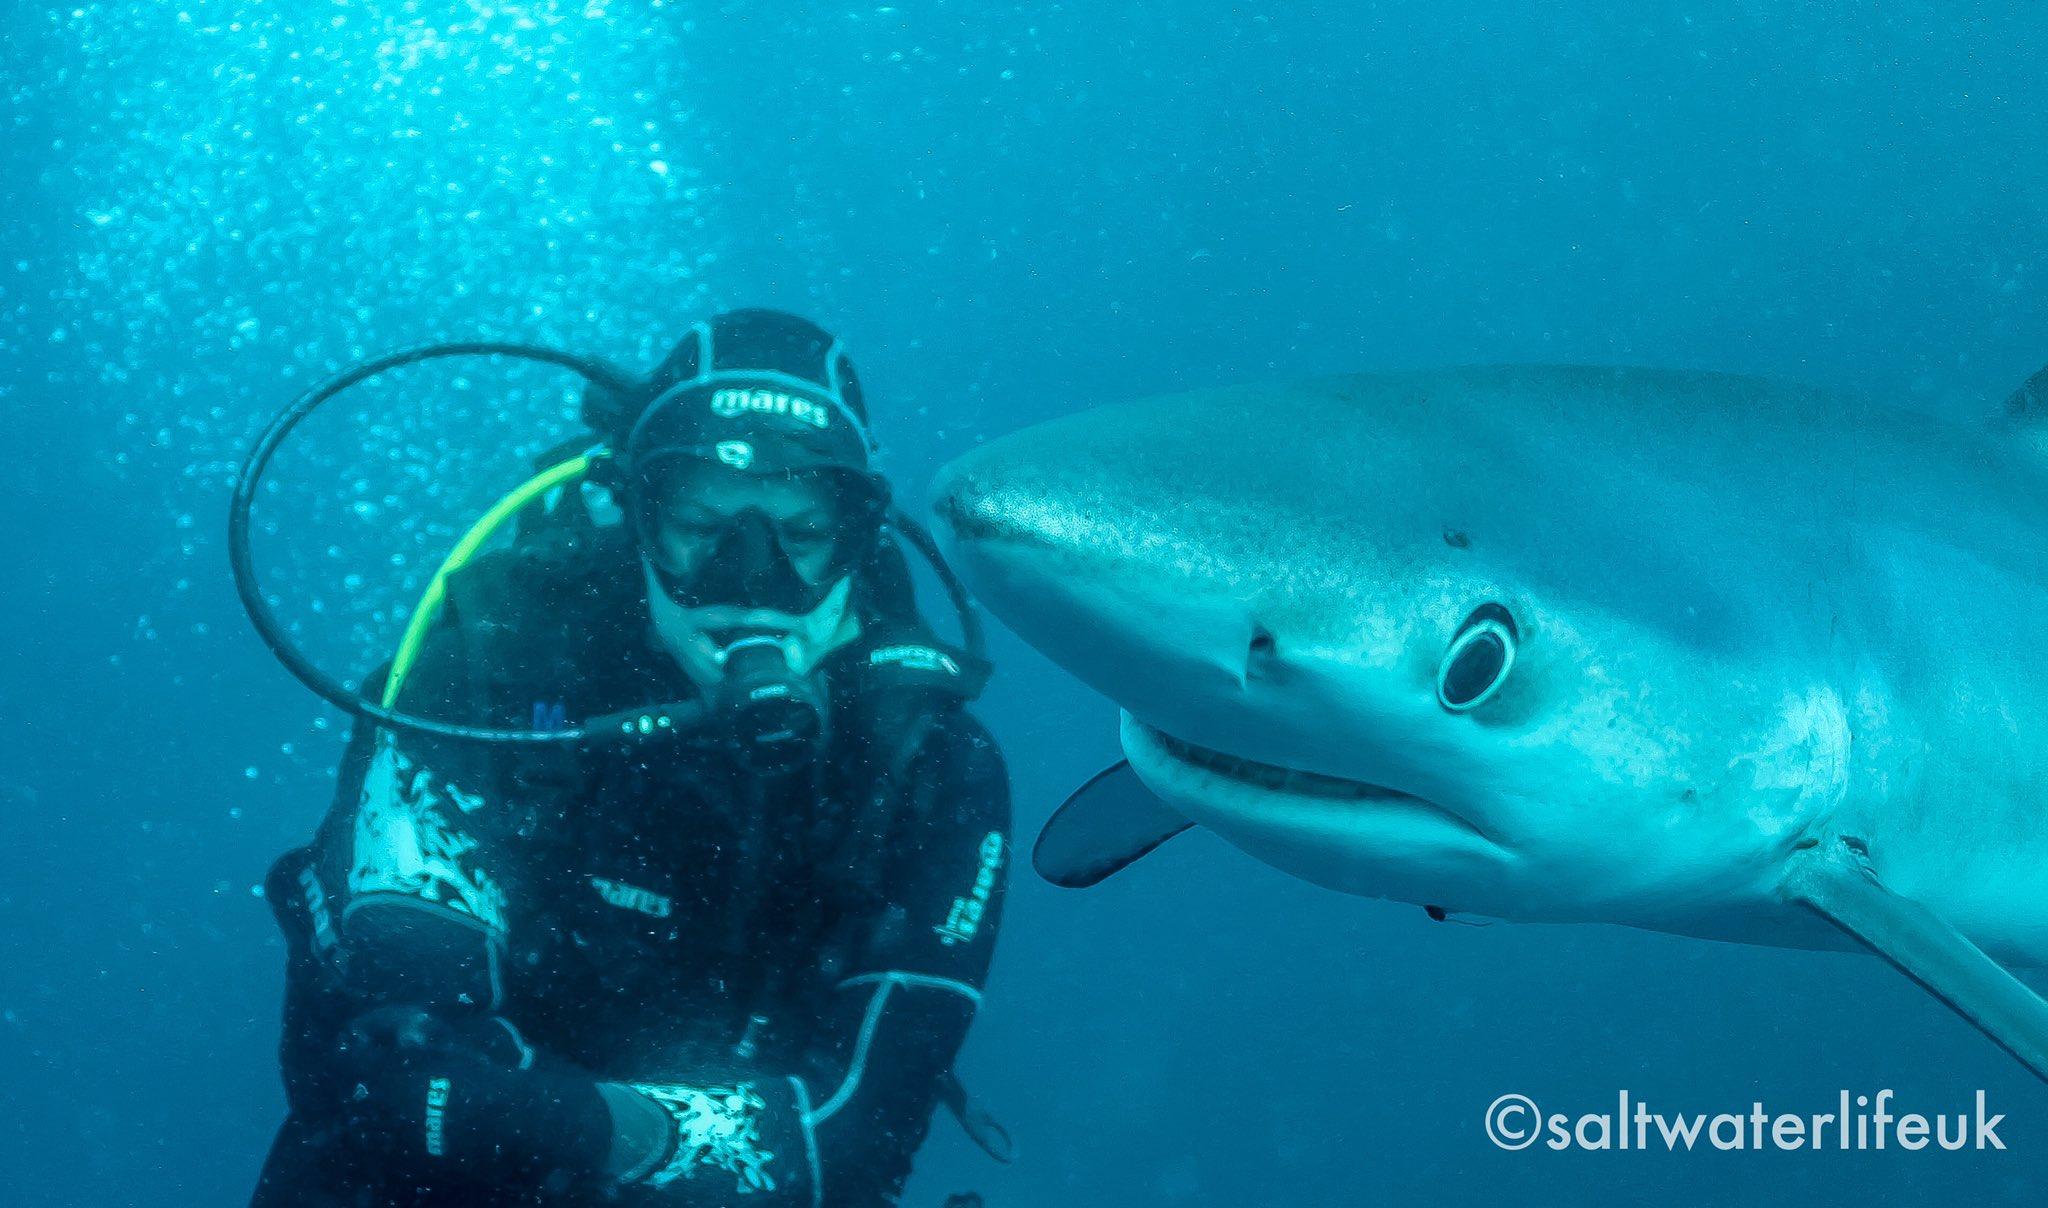 Getting photobombed by a blue shark the other day! #blueshark #sharkdiving #photobomb #scuba #shark https://t.co/hQwmWHGXv6